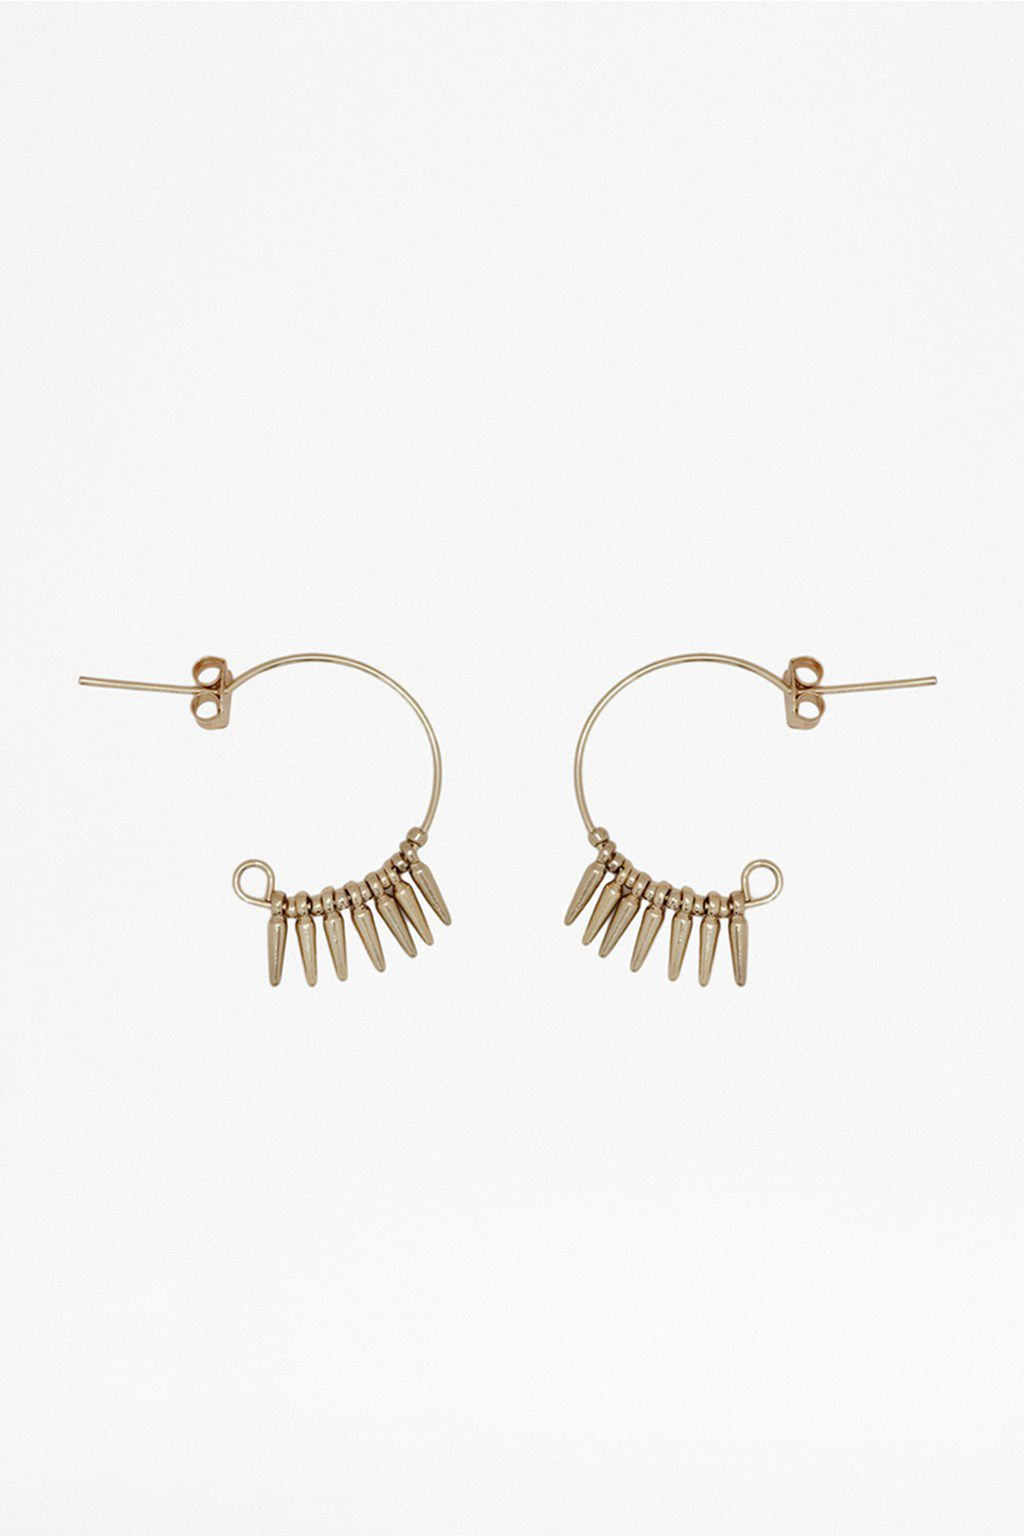 Mini spike & ball hoop earrings